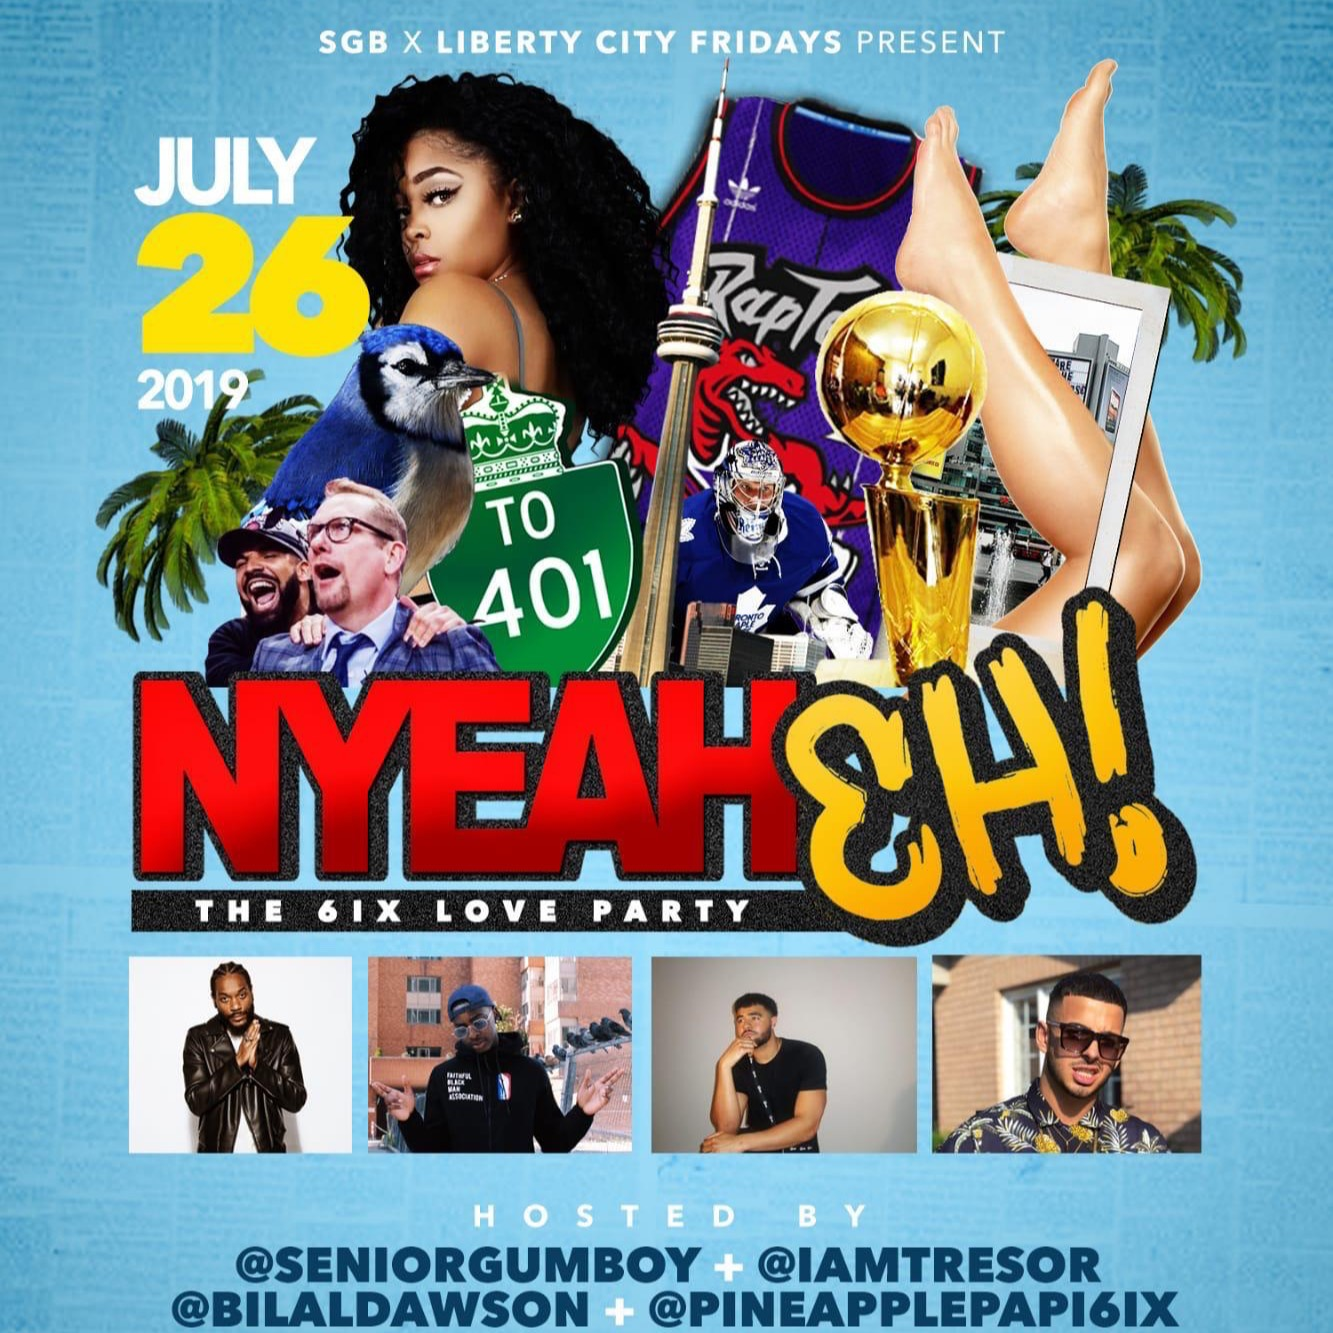 Nyeah Eh! The 6ix love party